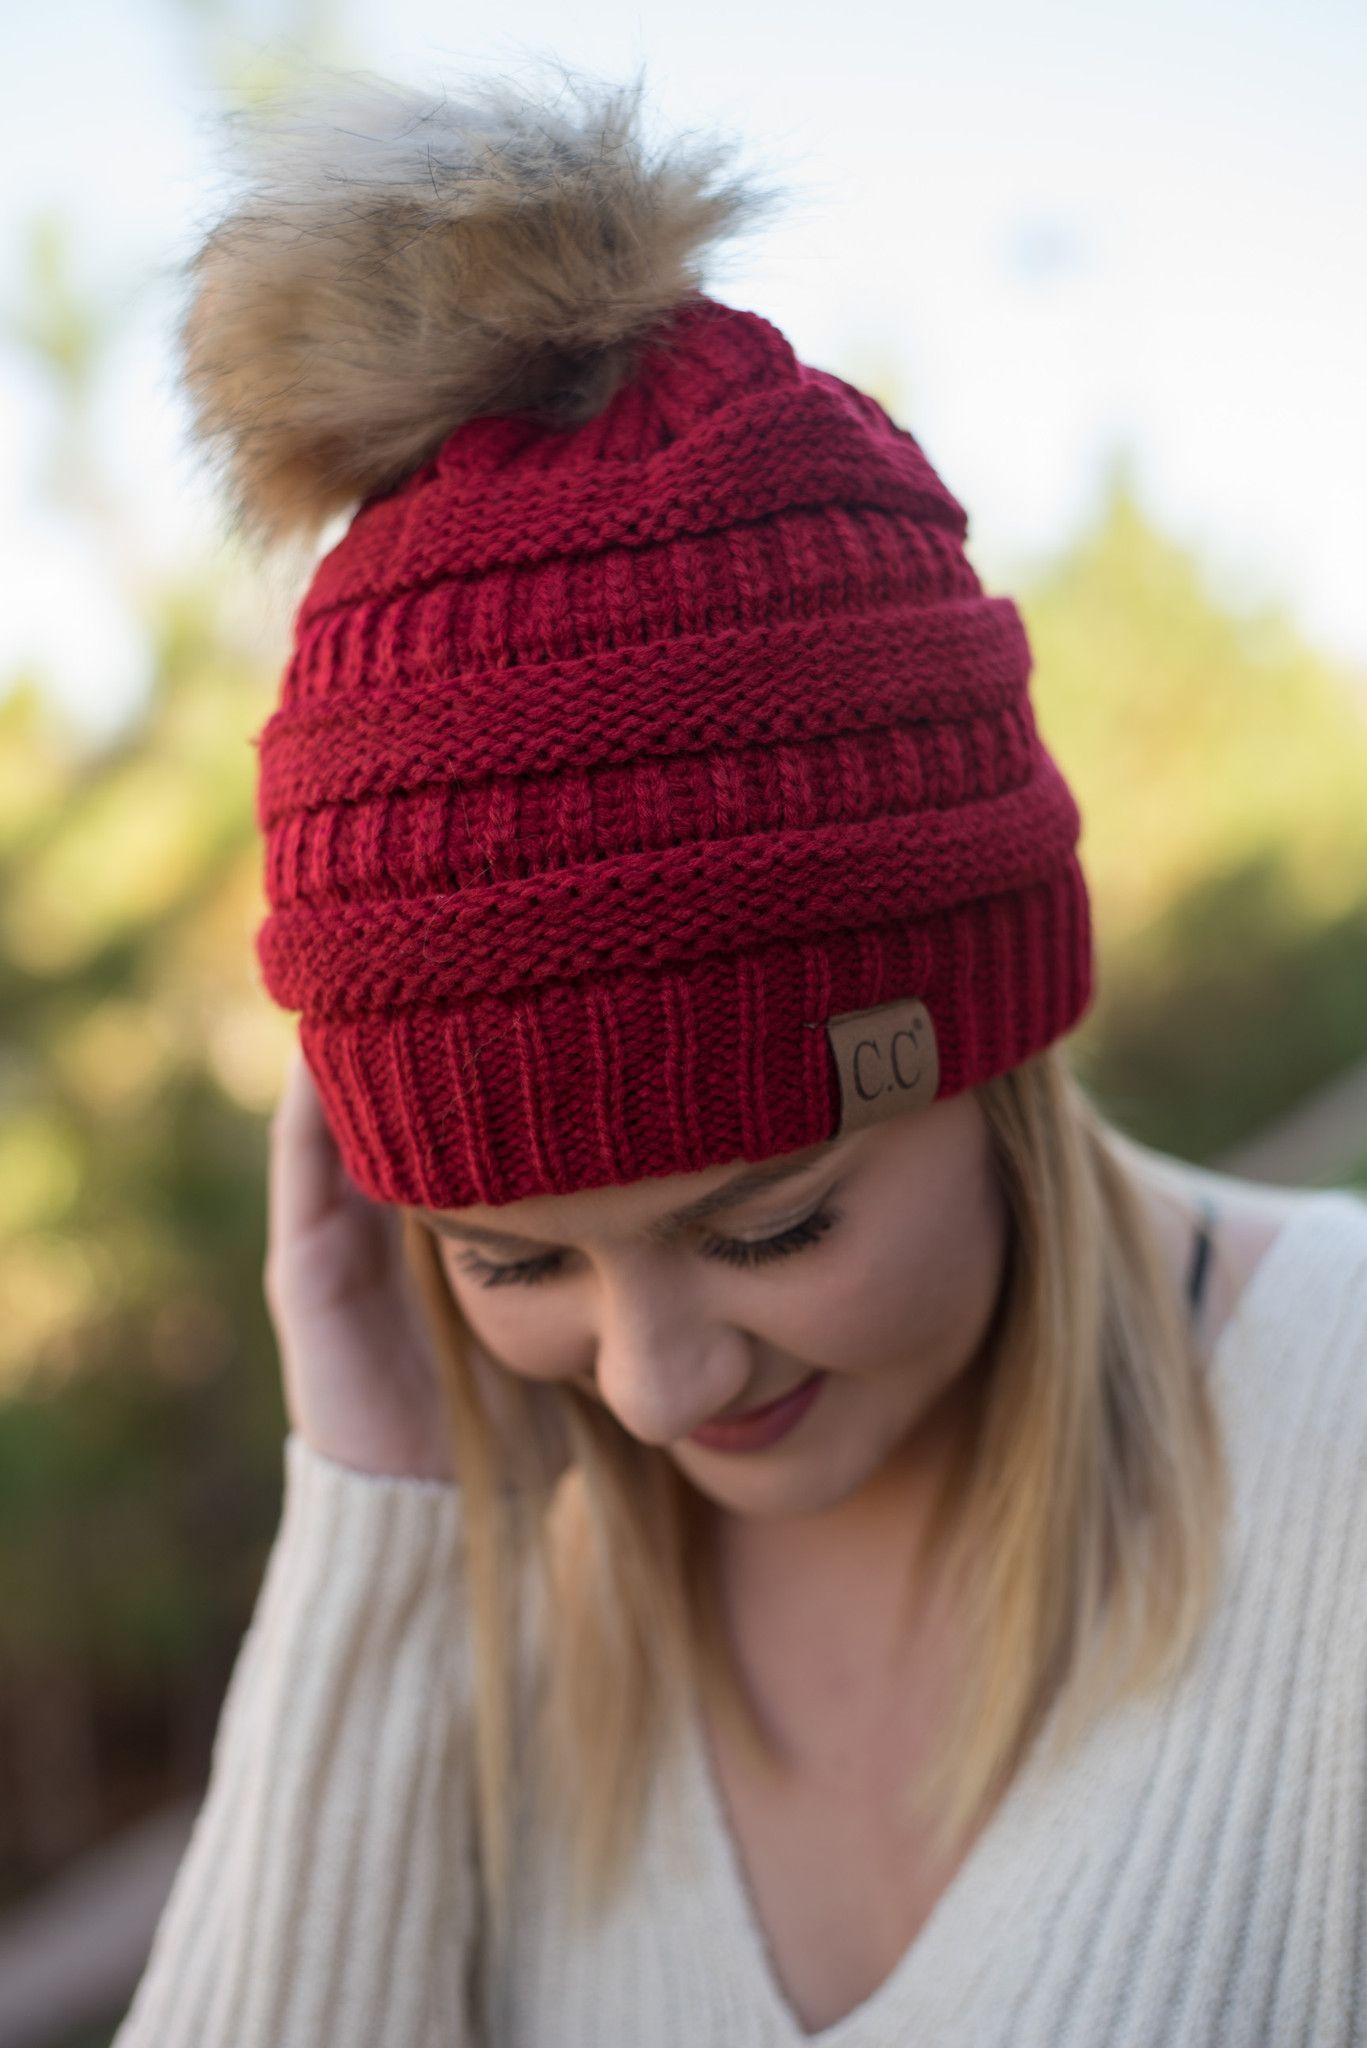 d7f1e63f5 CC solid beanie with fur pom red   CC Beanies, Hats, and Scarves ...